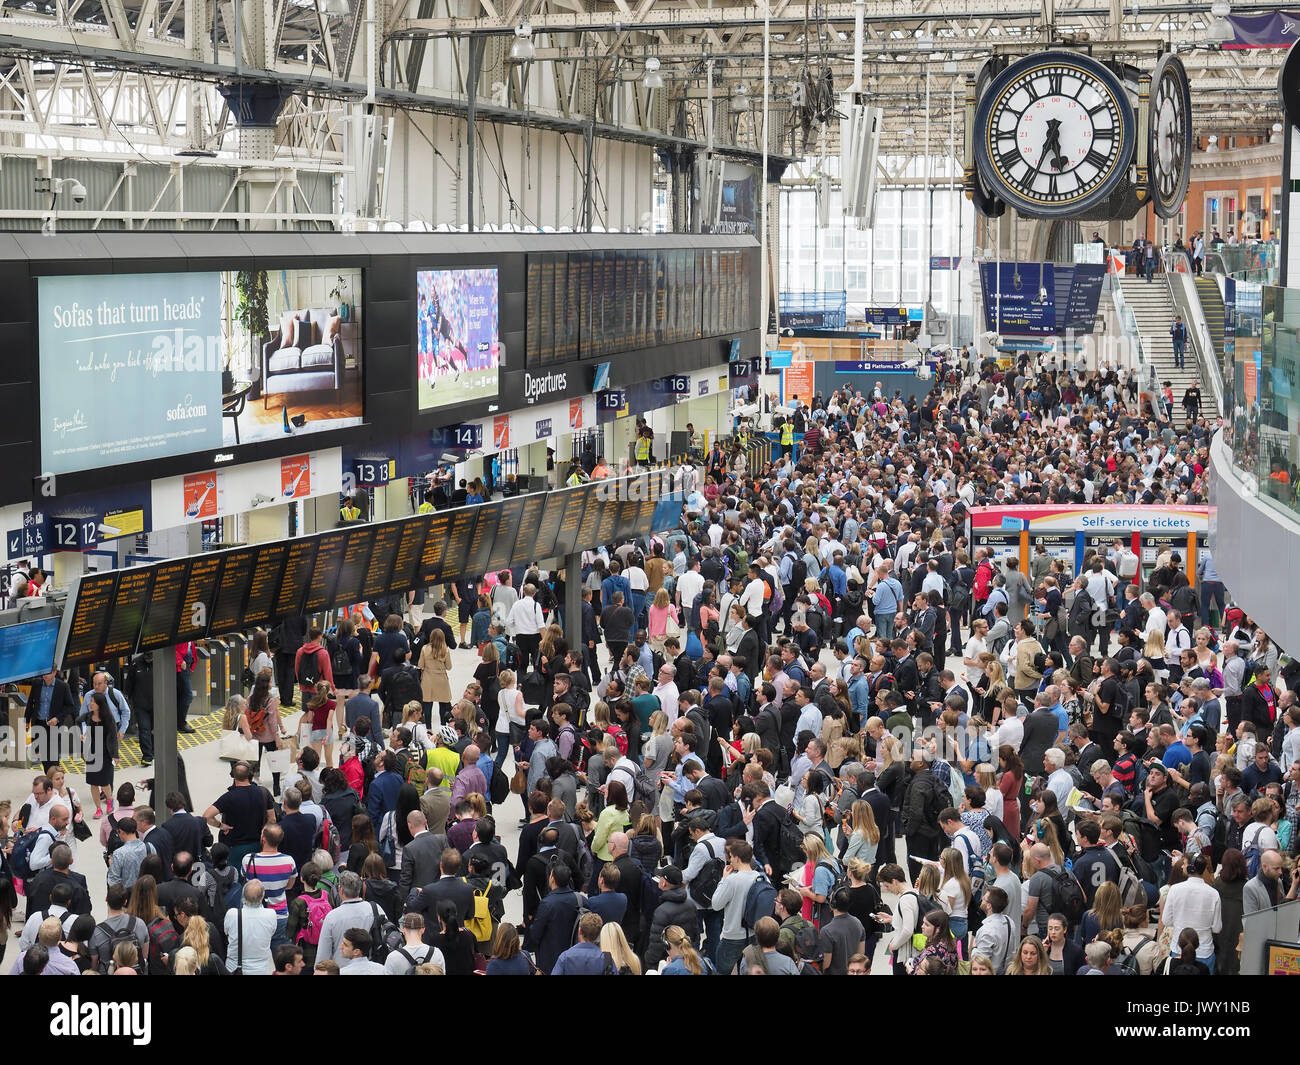 A view looking down on the crowded concourse at Waterloo Station in London due to platform closures during the 2017 station engineering upgrade - Stock Image